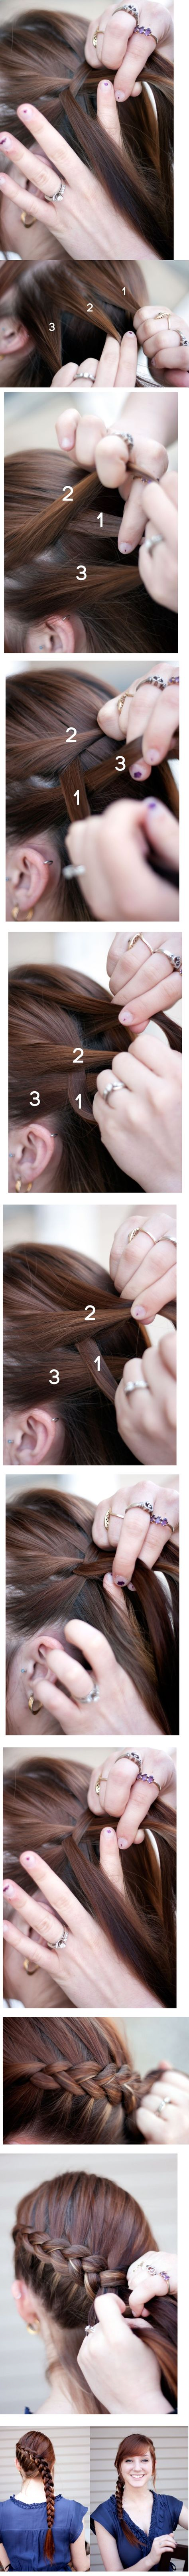 been wanting to know how to do this!